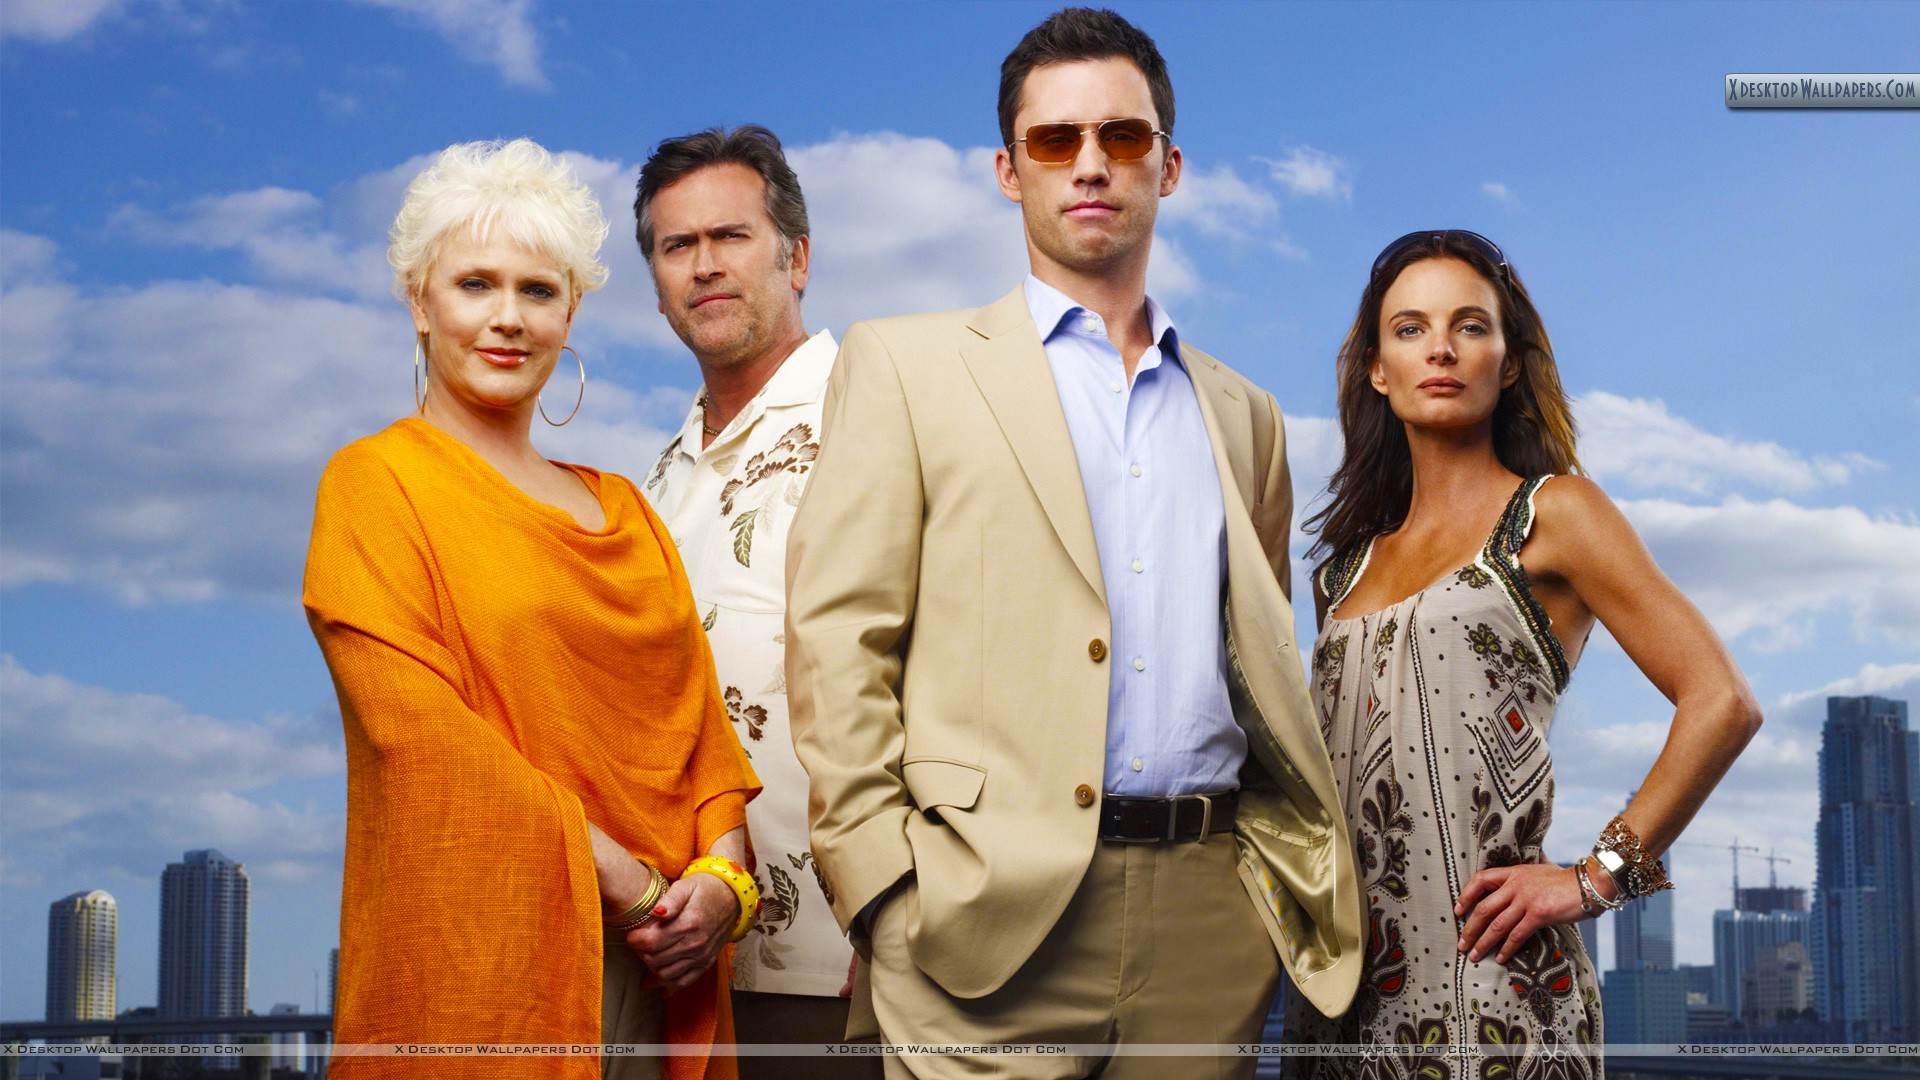 🔥download burn notice 🔥tv show season 1,2,3,4,5,6,7,8 full episodes.